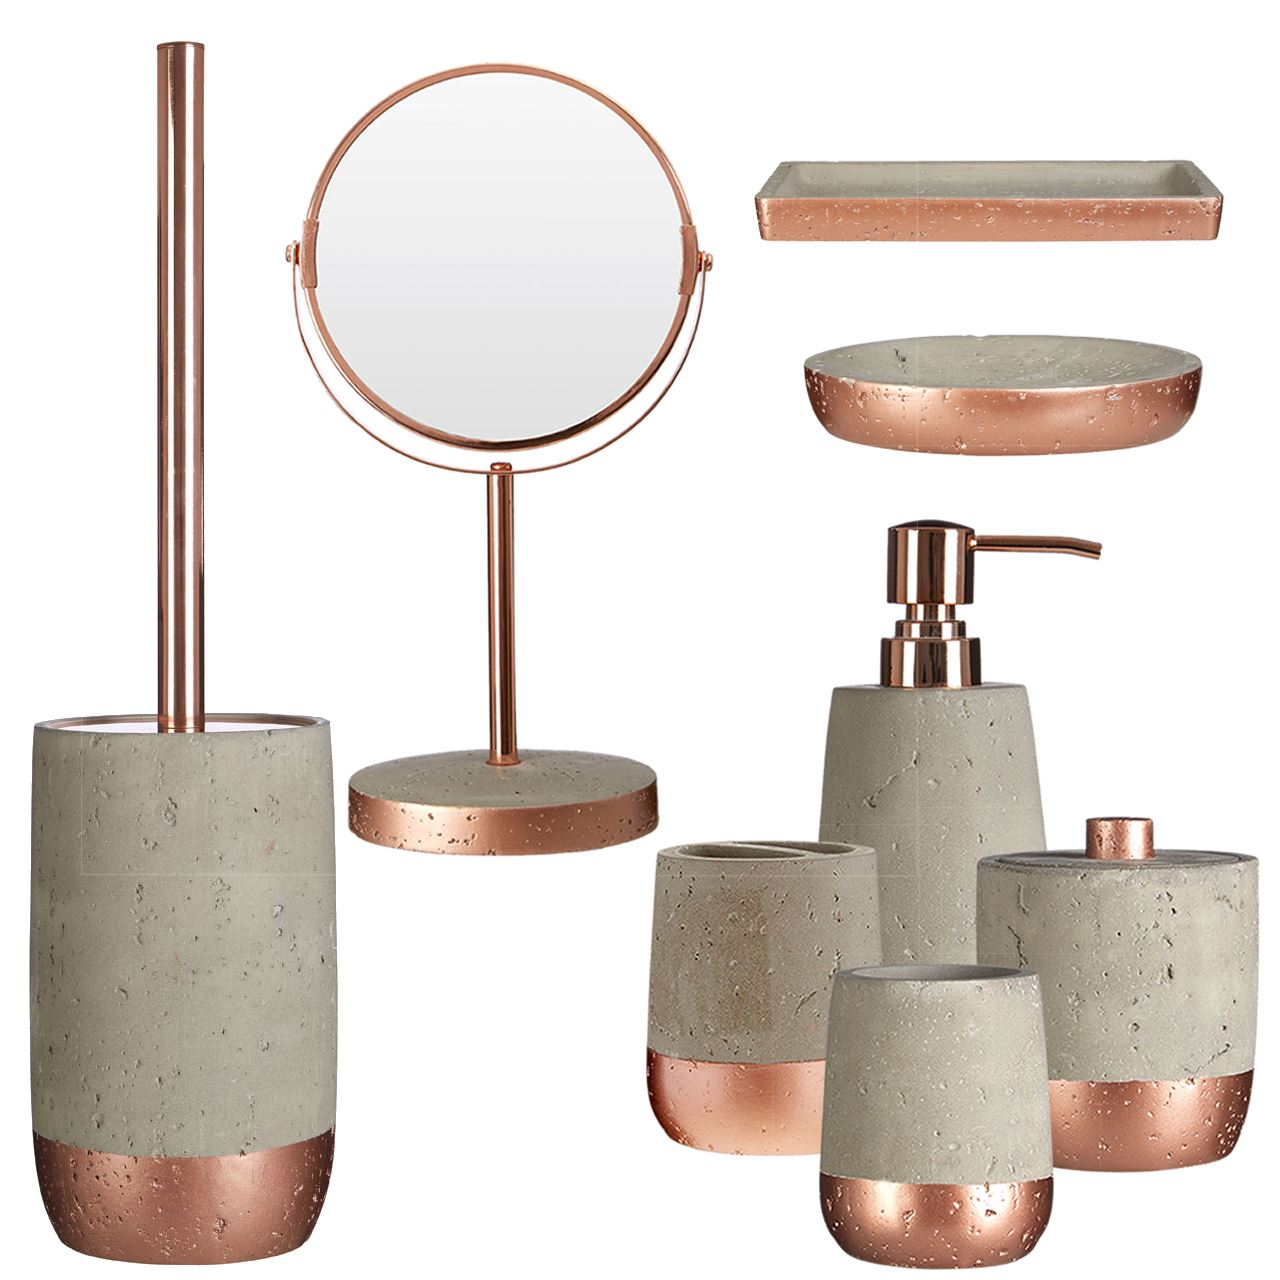 Neptune Bathroom Accessory Set 8pc Warm Copper Finish